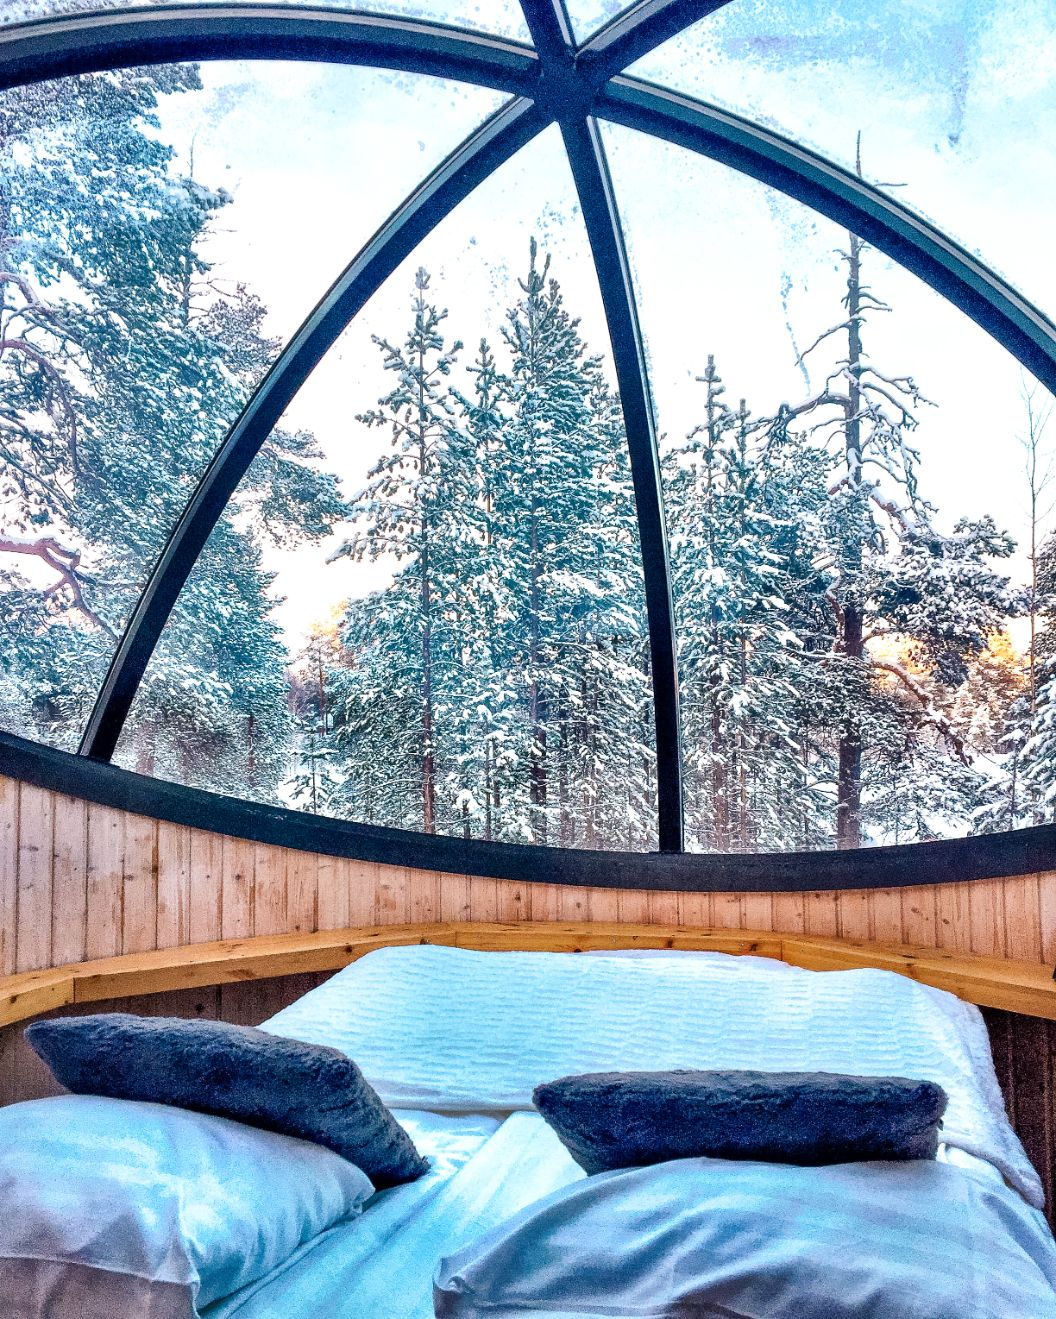 bed inside an aurora bubble with glass dome ceiling looking out at snow covered trees in Finnish Lapland